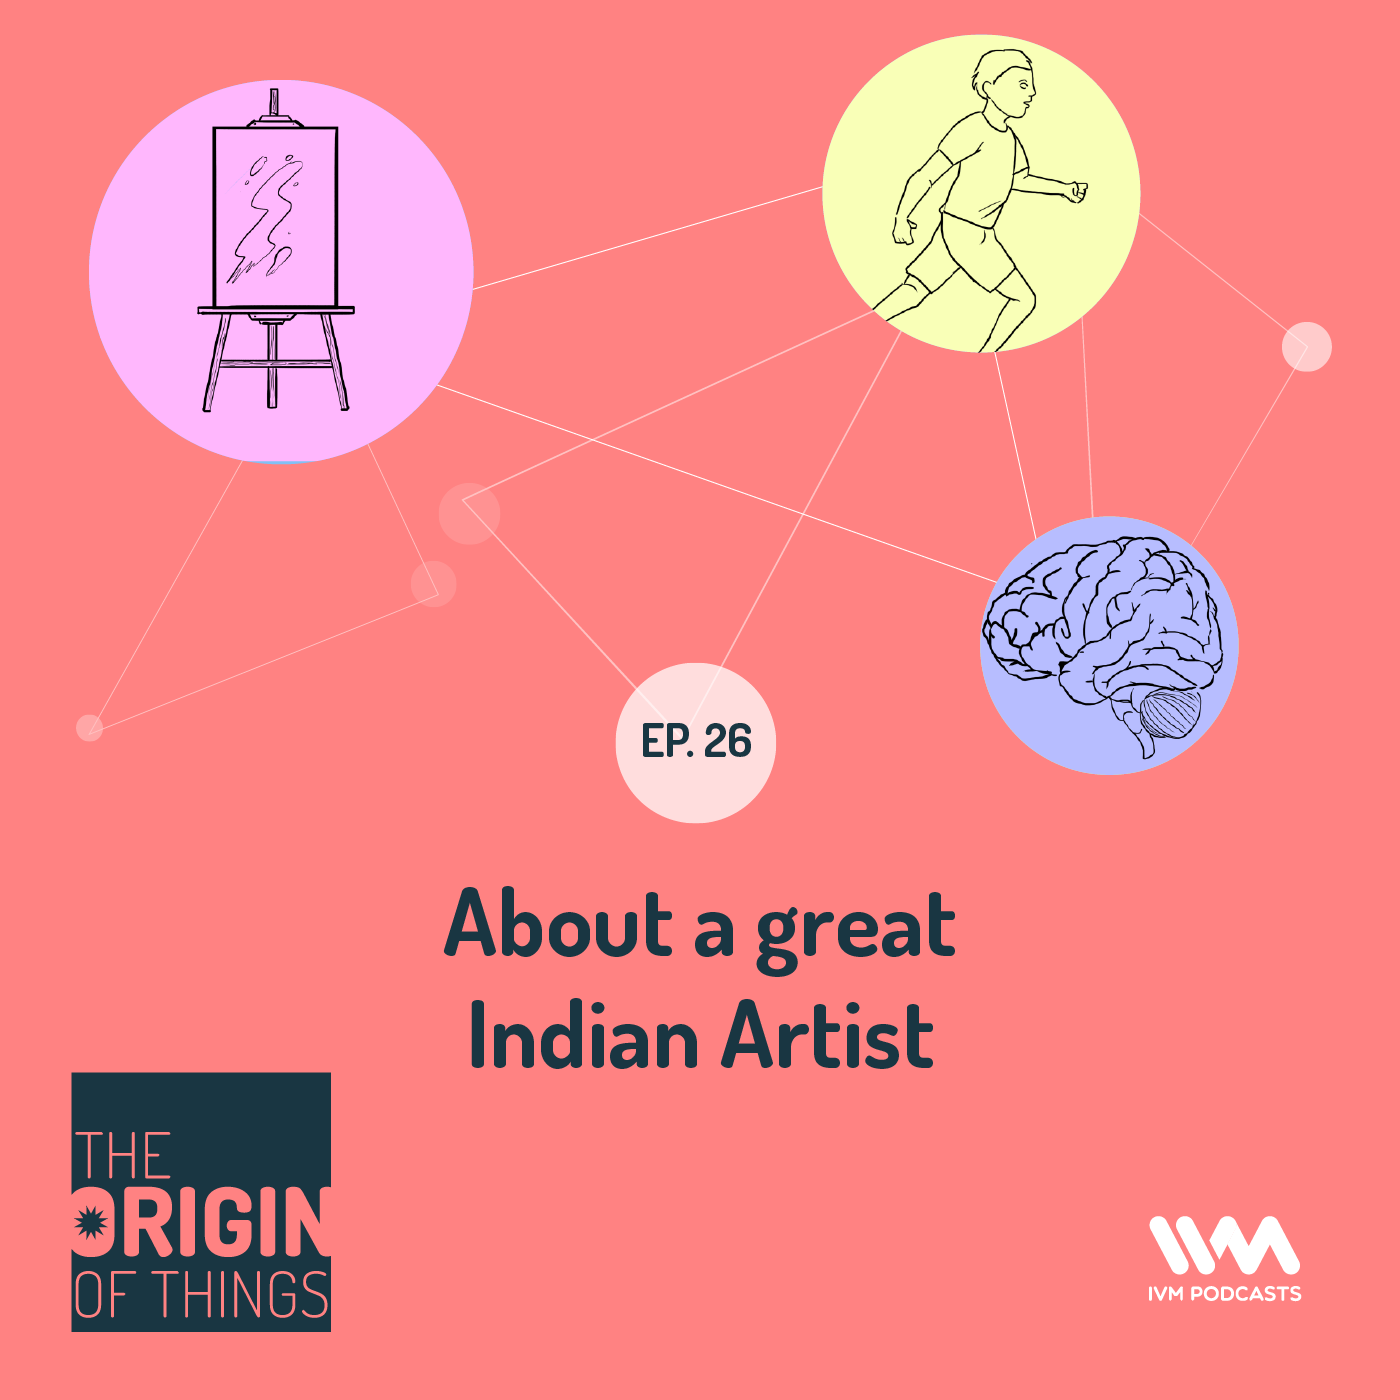 Ep. 26: About a great Indian Artist